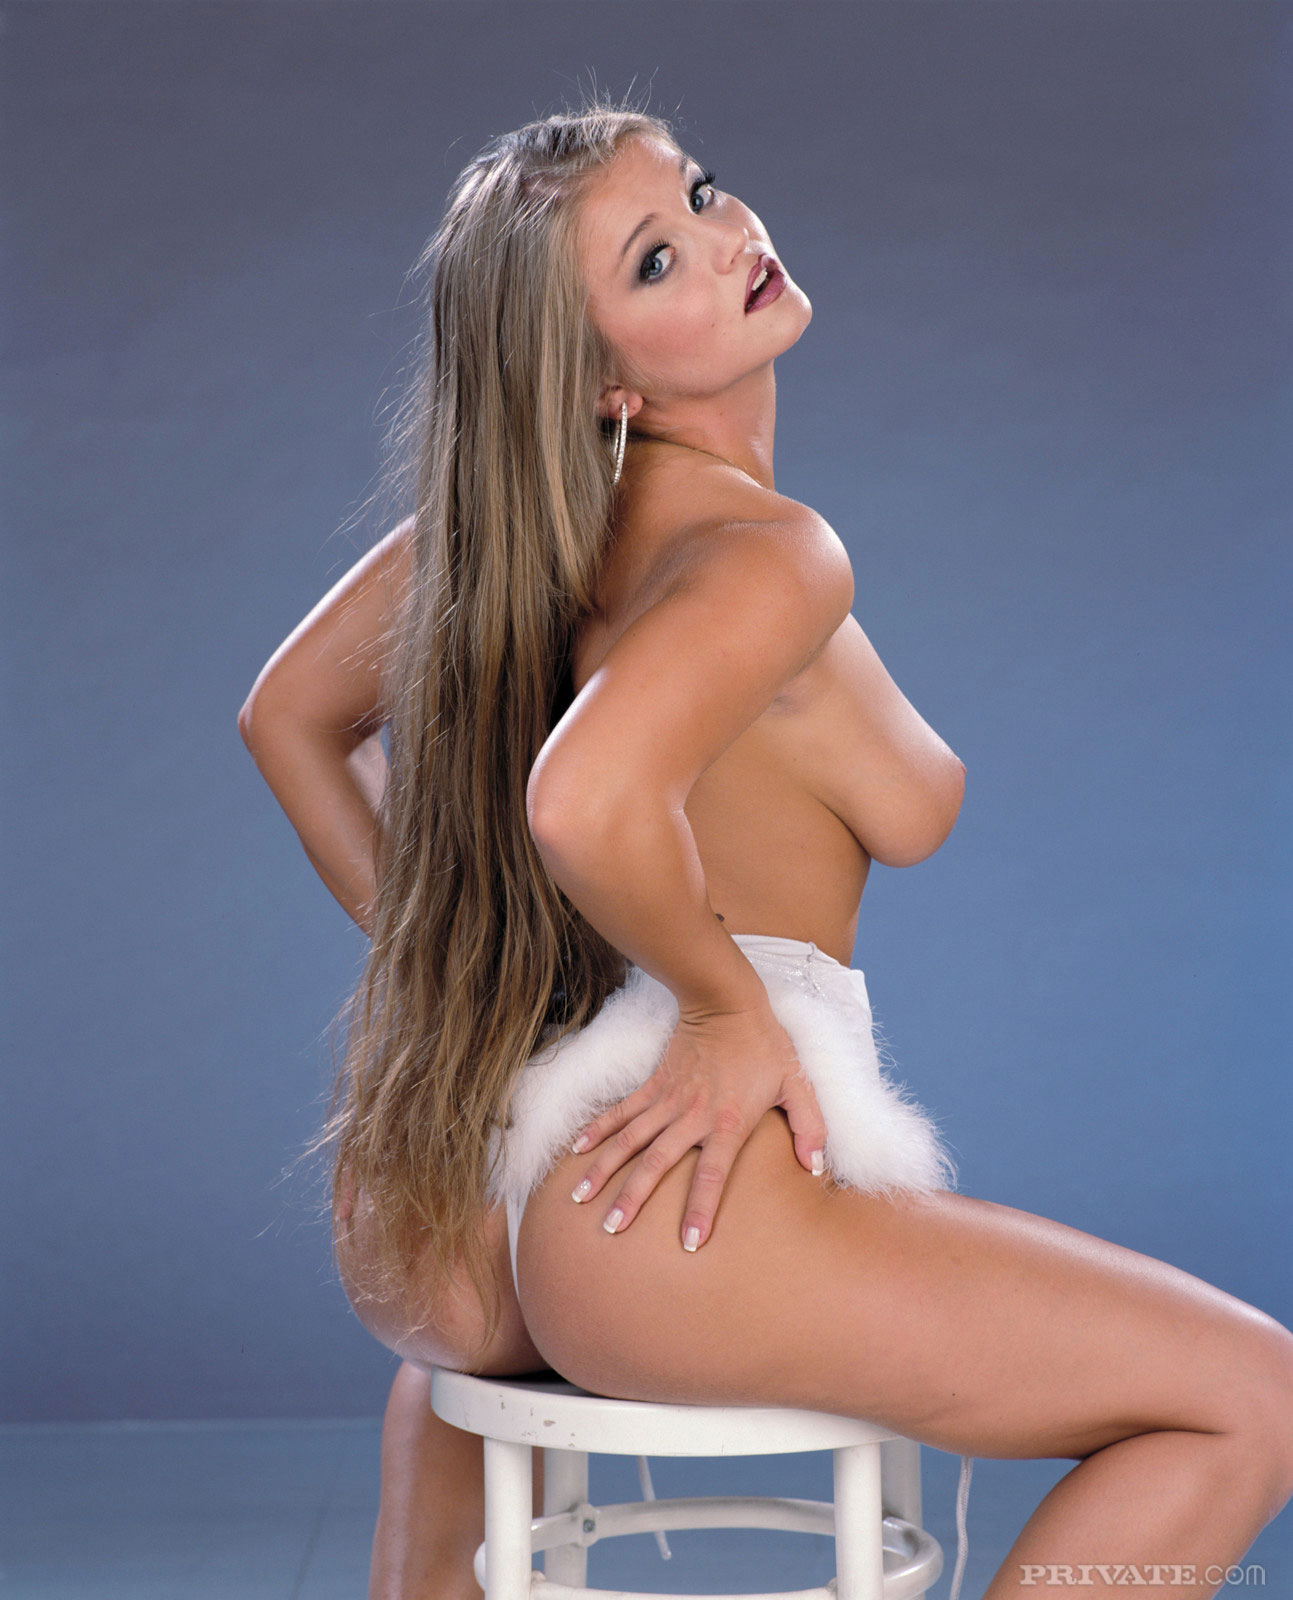 cdnhw galleries private Rita Faltoyano Big Member 5 1